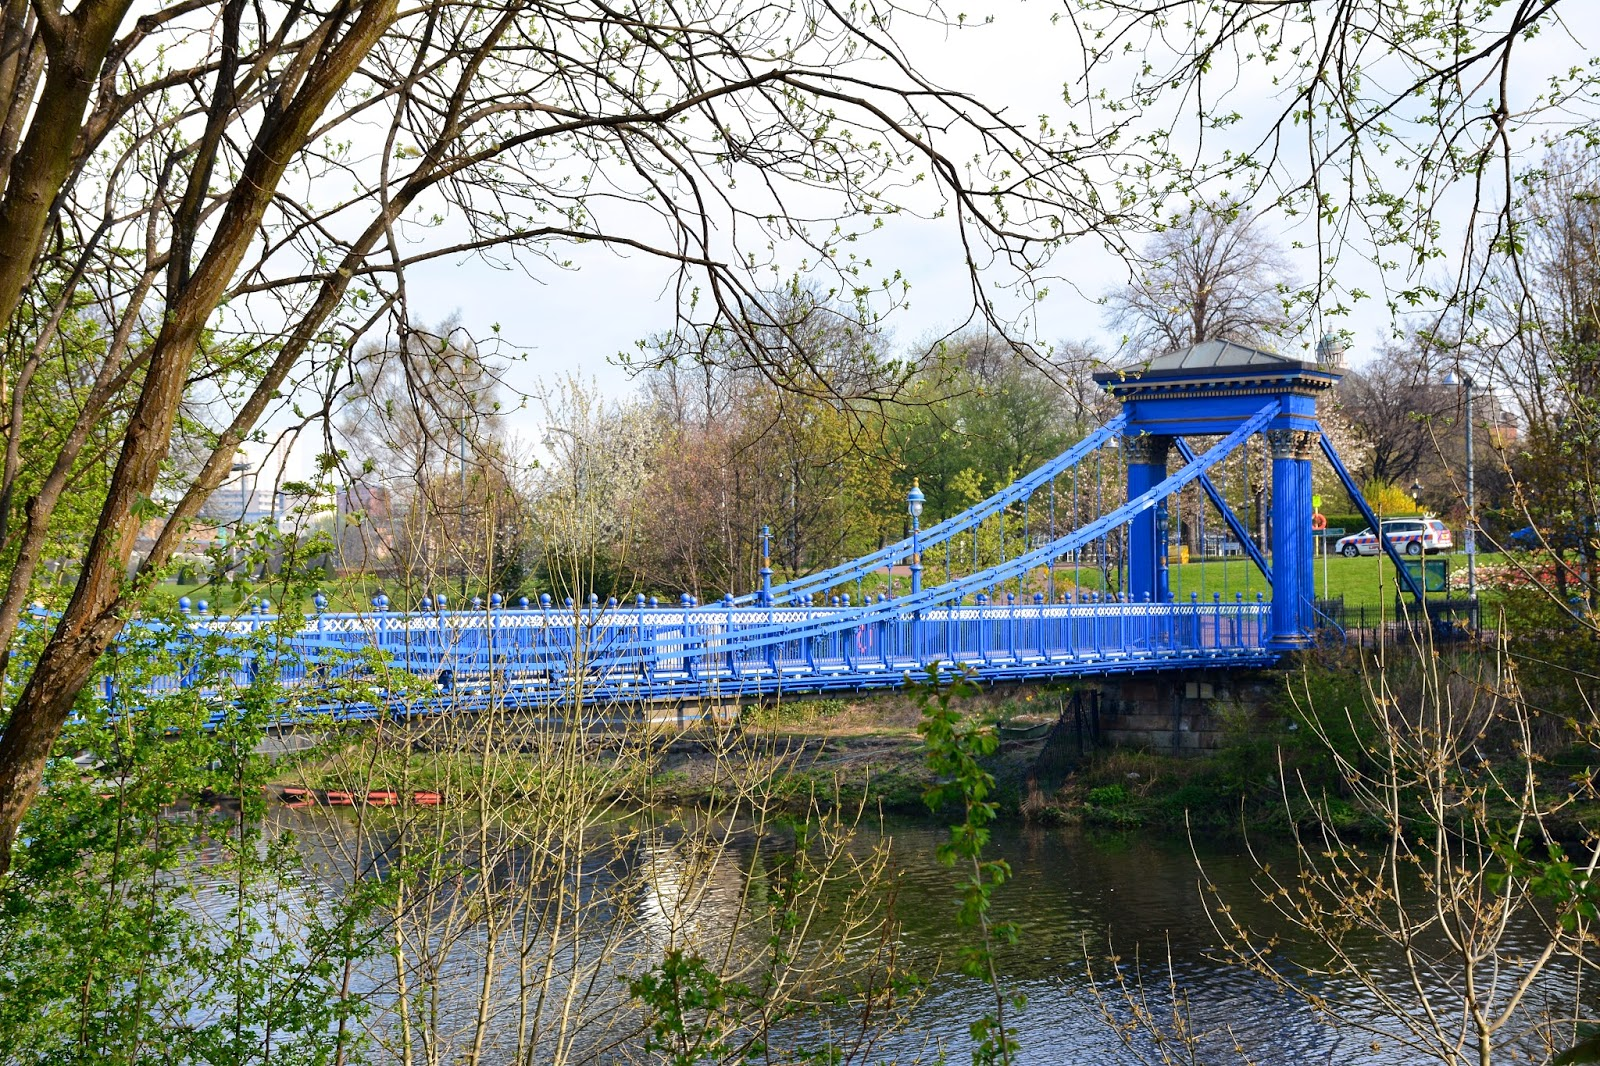 St. Andrew's suspension bridge in Glasgow